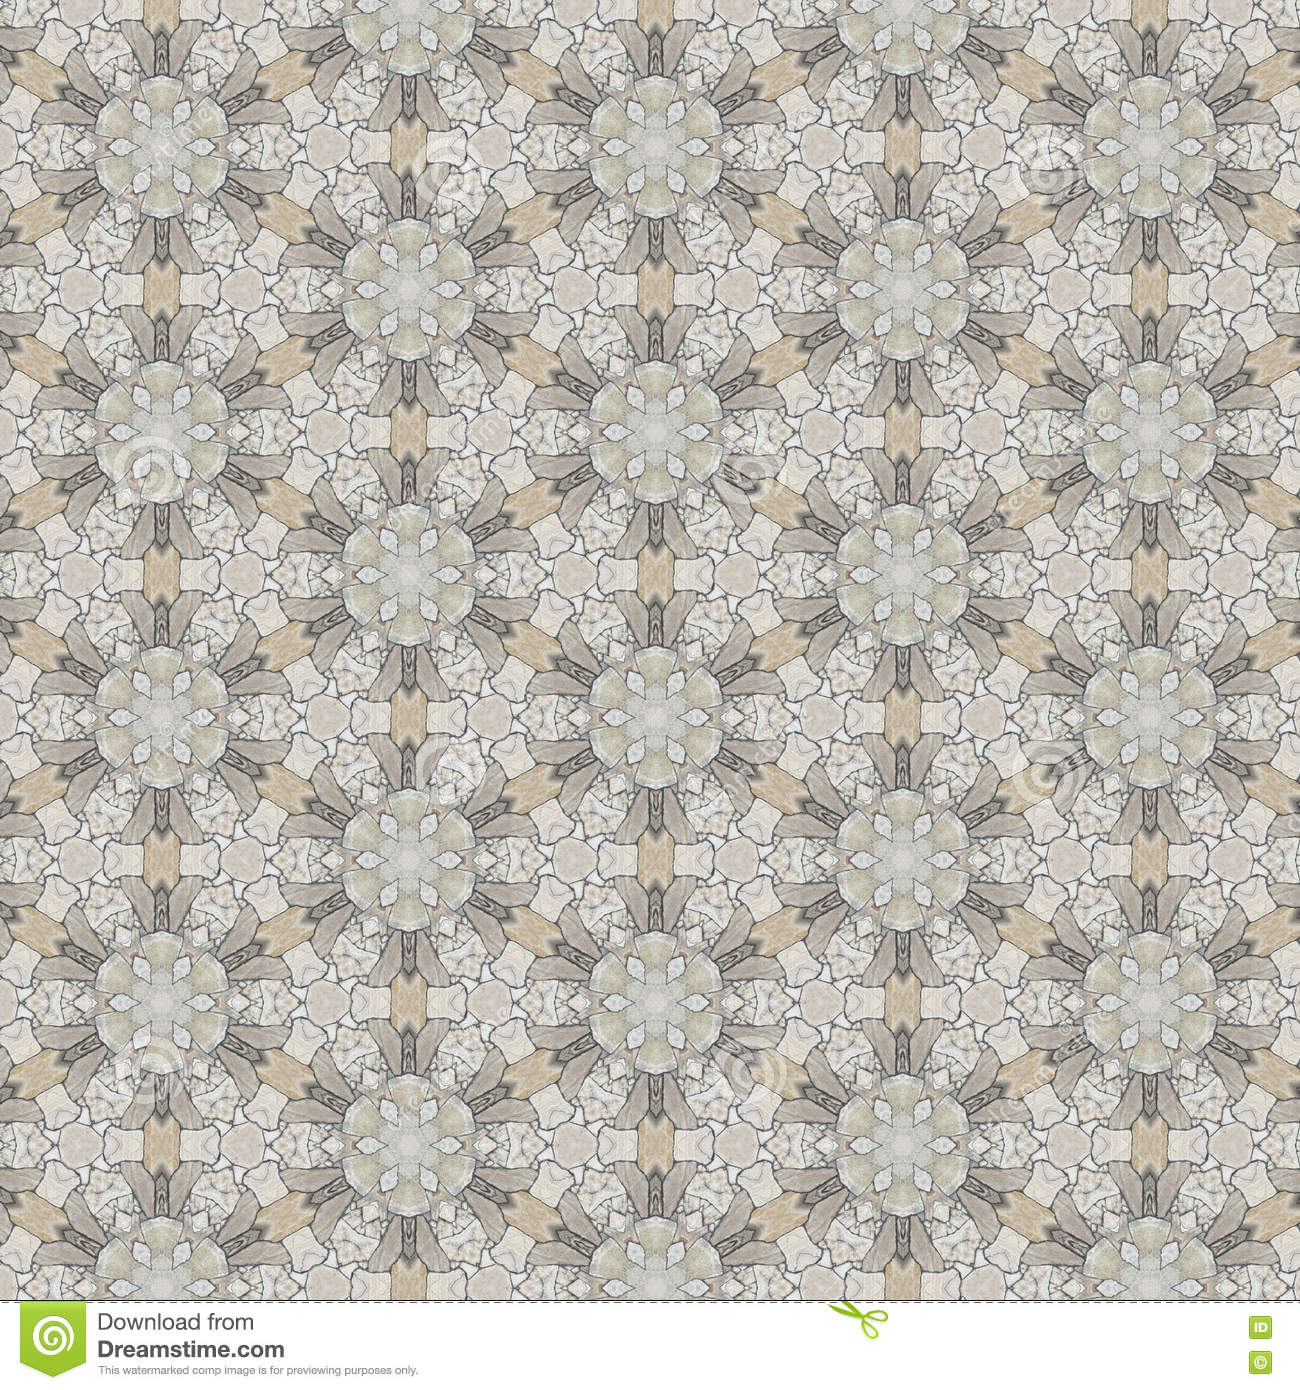 Pattern Design For Fabric Or Interior Wallpaper Stock Illustration ...